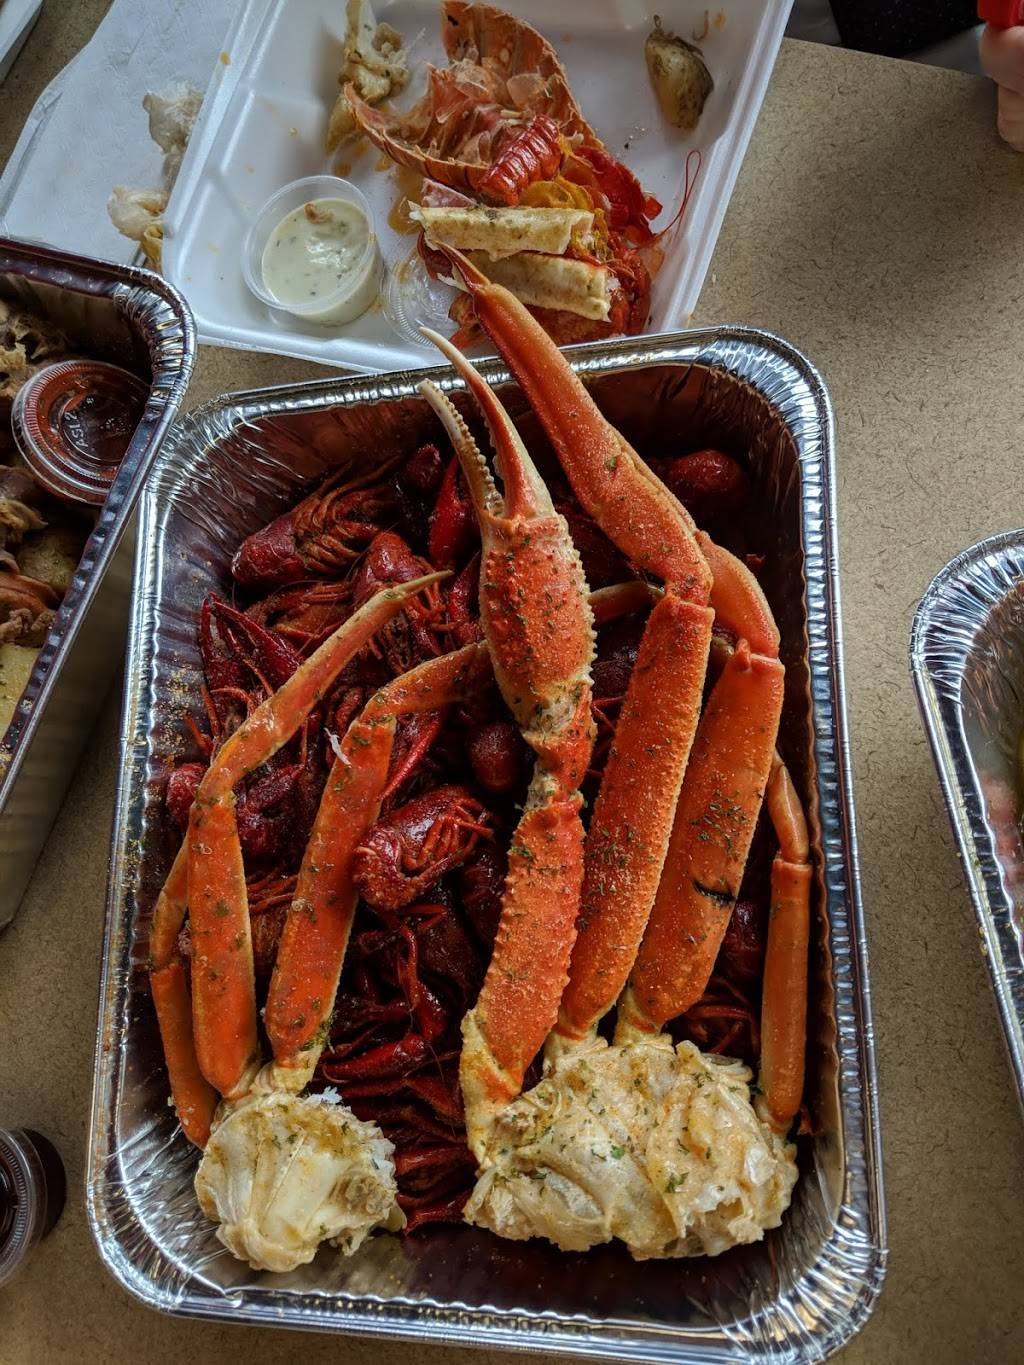 LT New Orleans Seafood Market | restaurant | 585 Joseph E Lowery Blvd SW, Atlanta, GA 30310, USA | 4045001954 OR +1 404-500-1954